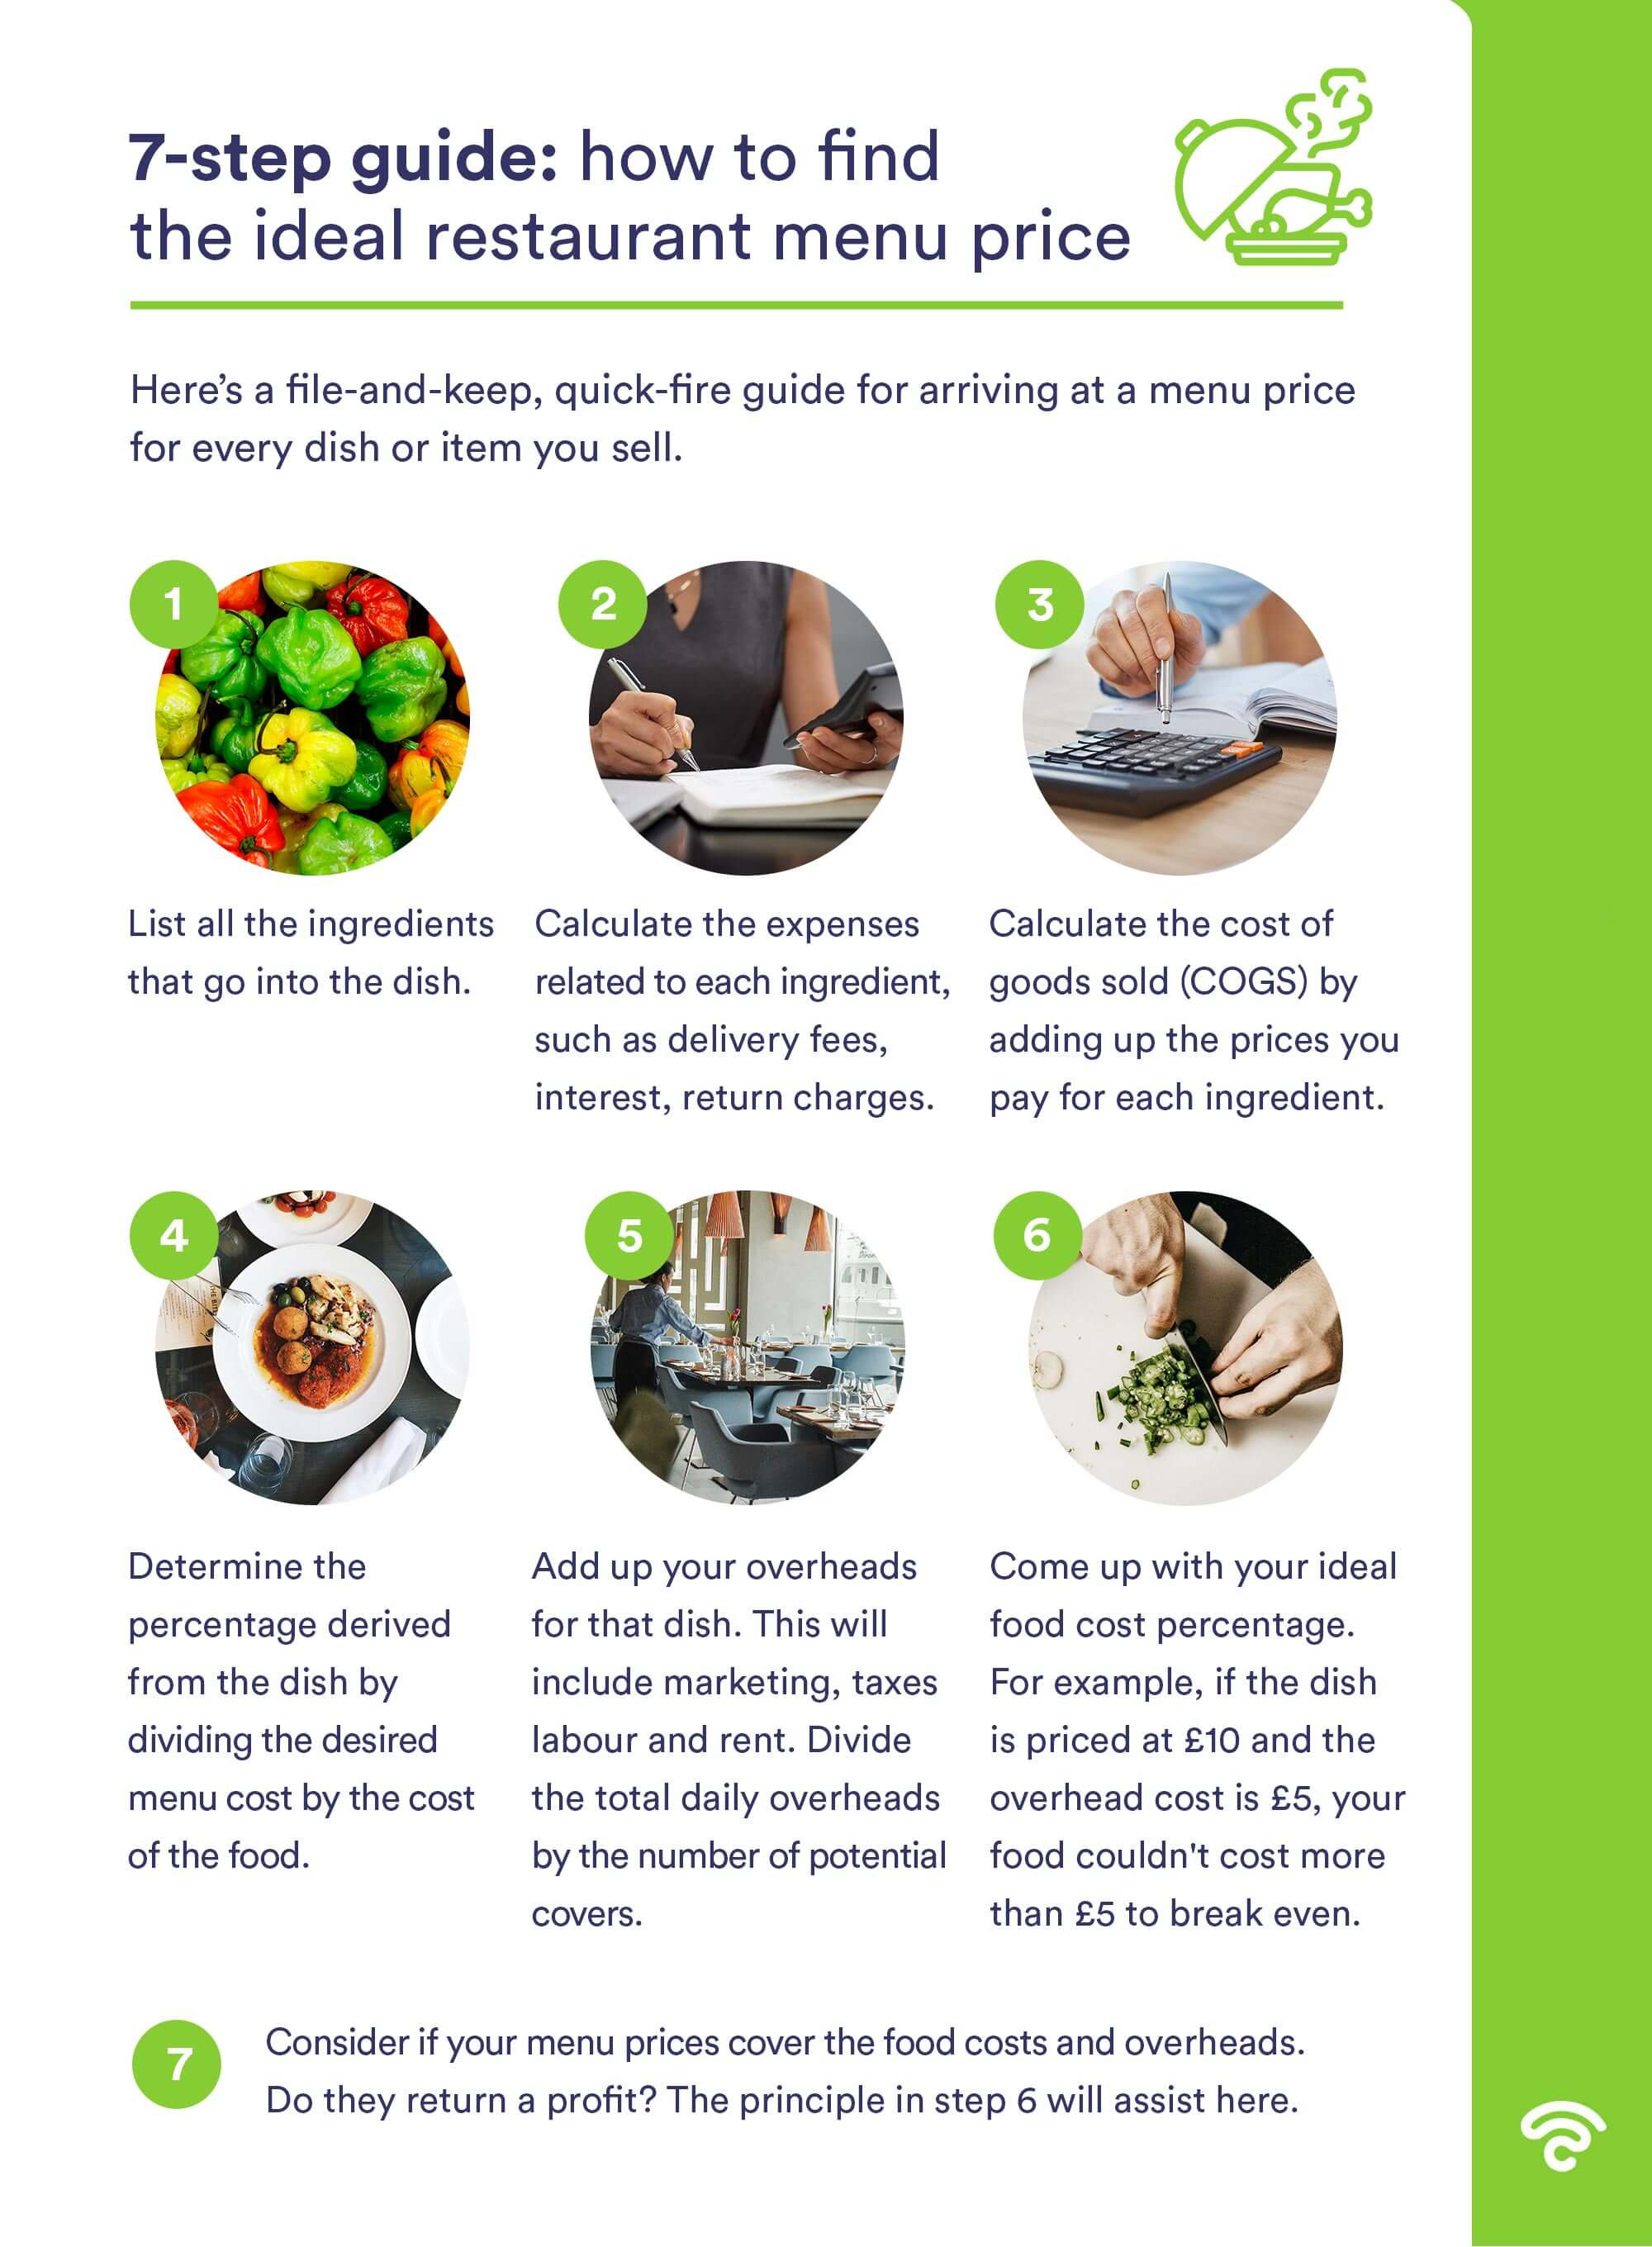 7 step guide to finding the ideal restaurant menu price